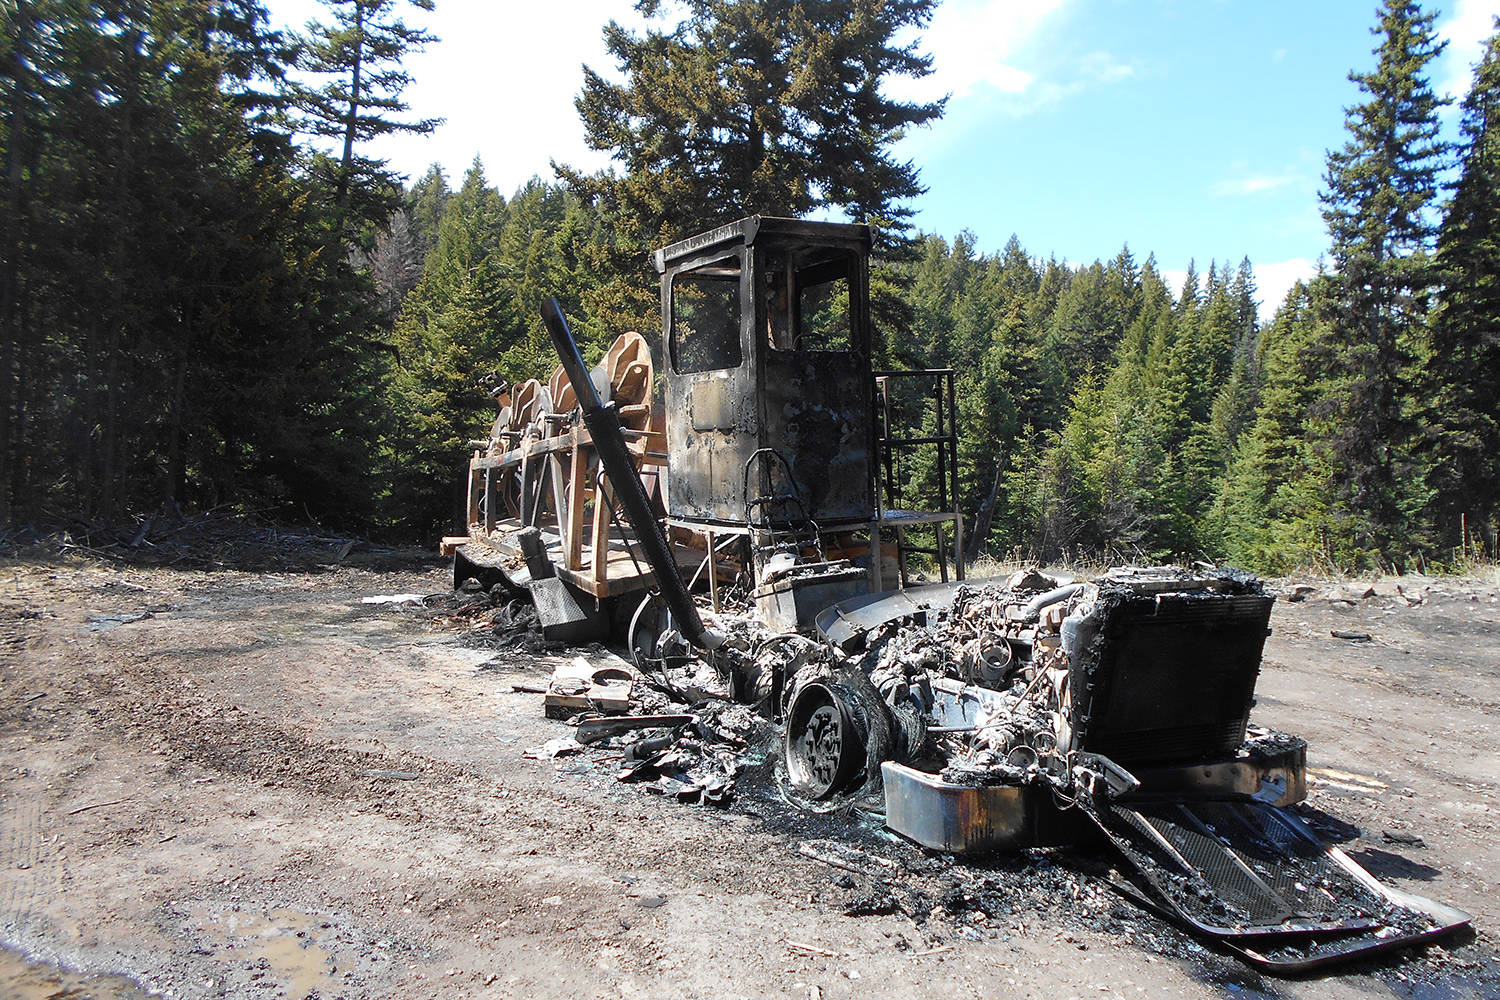 A blue Peterbilt rope truck on a Trans Mountain Expansion Project site near Merritt, B.C. was the target of an act of vandalism and theft one day and the subject of a suspicious blaze another. (Contributed)